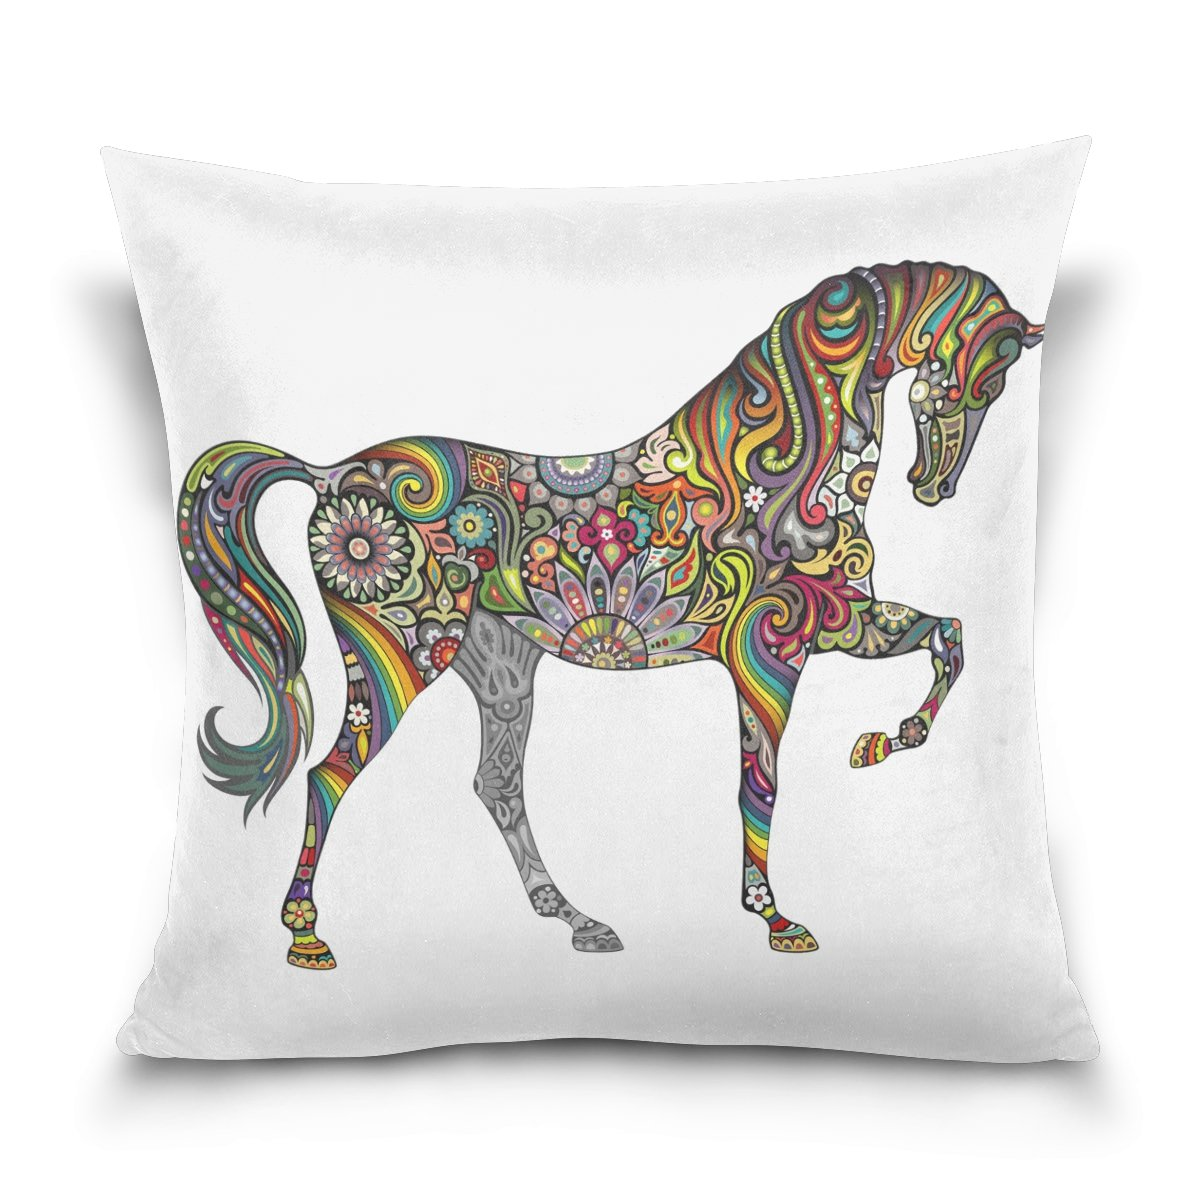 Hokkien Blue Viper Animal Theme Colorful Painted Cartoon Horse Decorative Square Throw Pillow Case Cushion Cover for Sofa Bedroom Car Double-Sided Design 20 x 20 inch